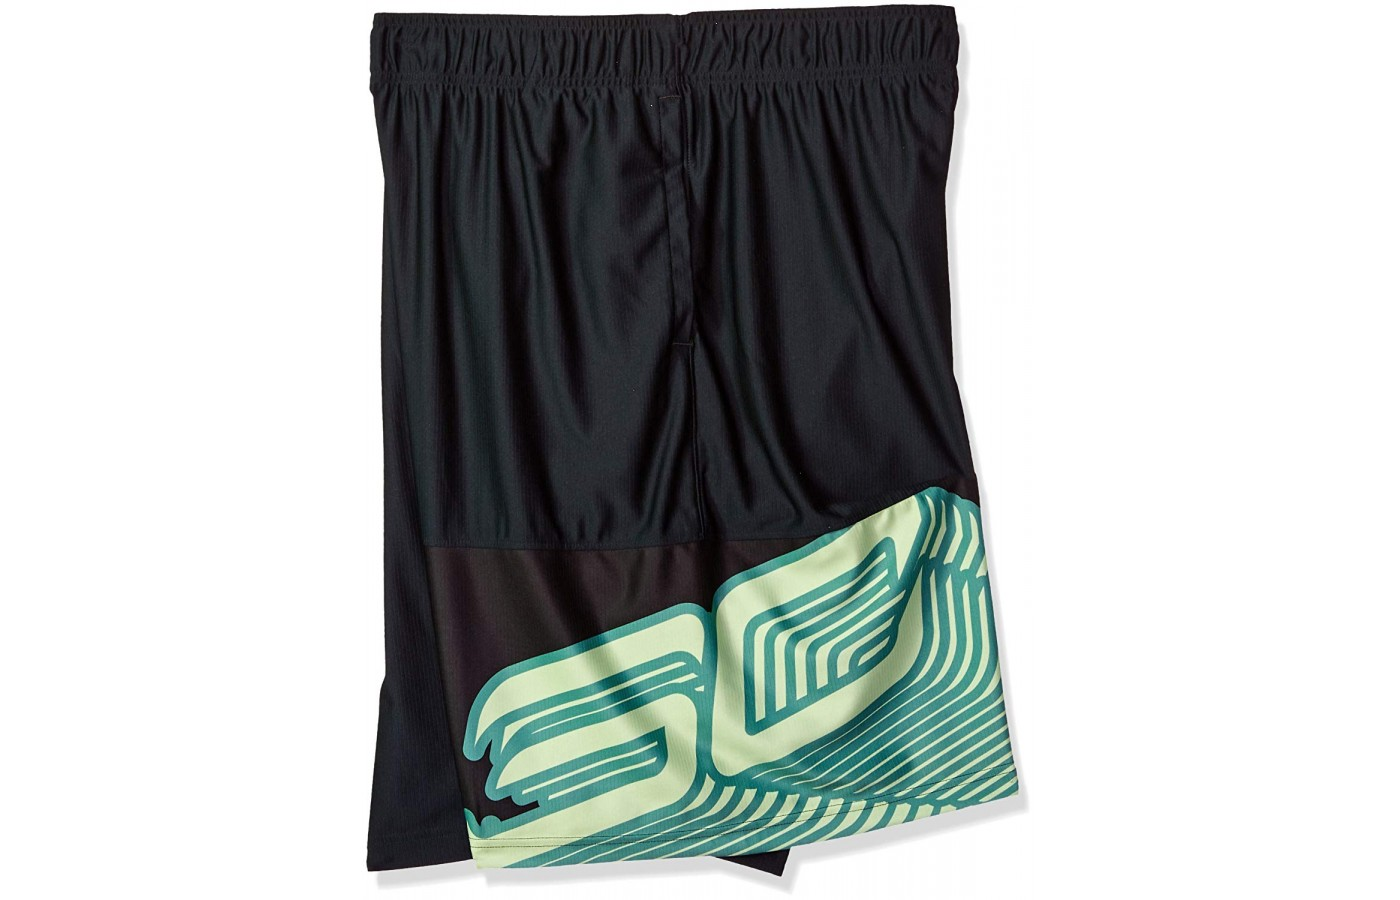 Under Armour SC30 Shorts side